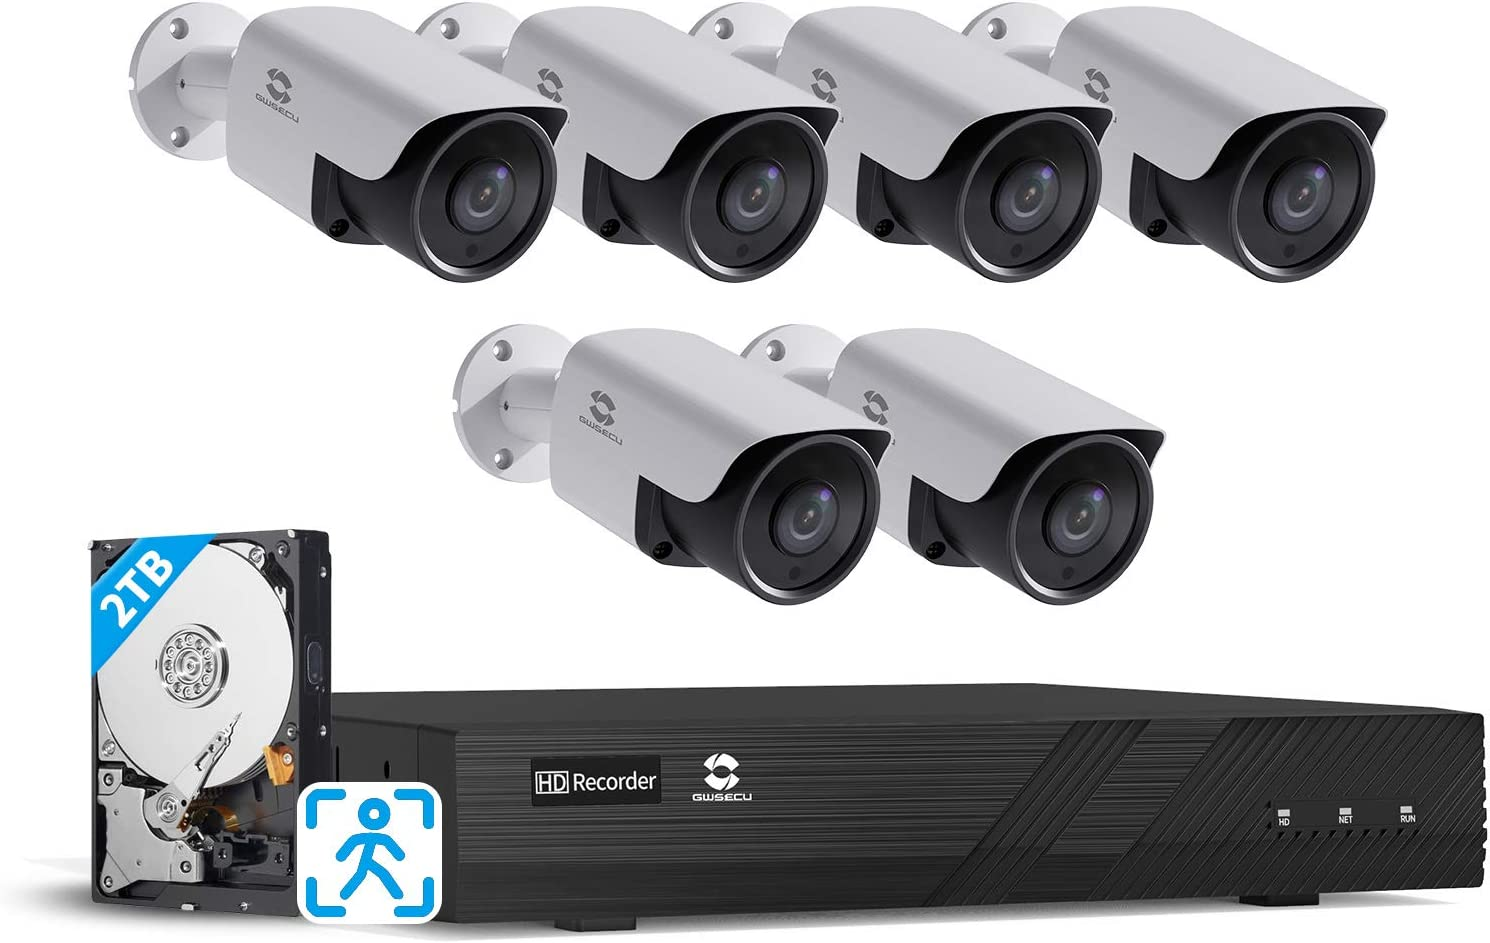 GWSECU 4K 8CH PoE Security Camera System, 4K/8MP Video Surveillance NVR Kits with 2TB HDD, 6X 5MP 2.8mm Smart Human Detection Network IP Bullet Cameras for Home Business Audio 24/7 Recording